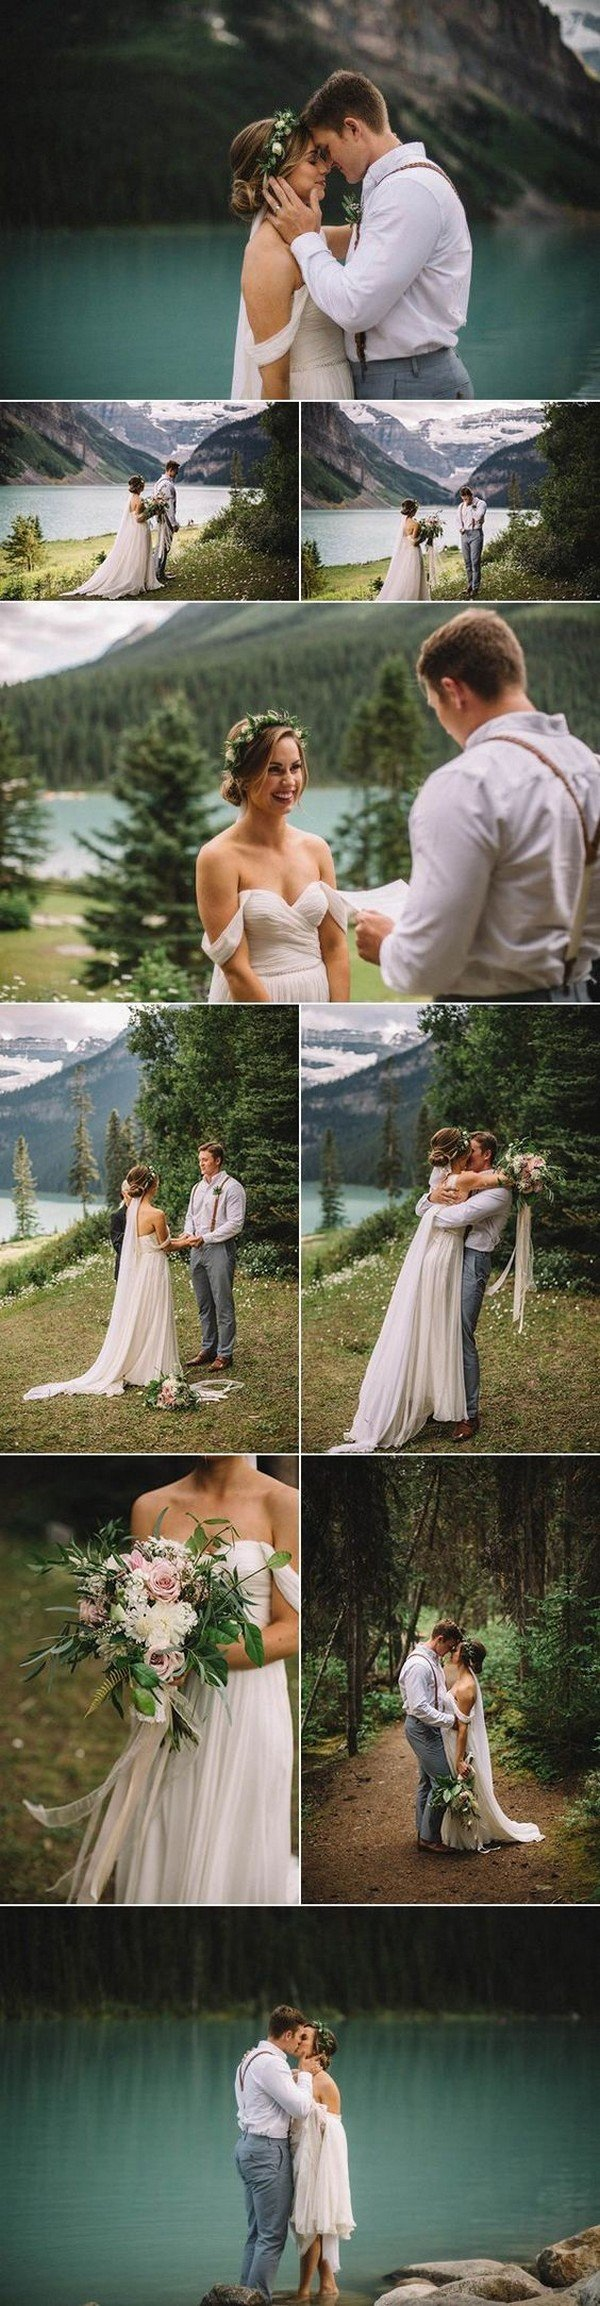 Lake Louise elopement photo ideas